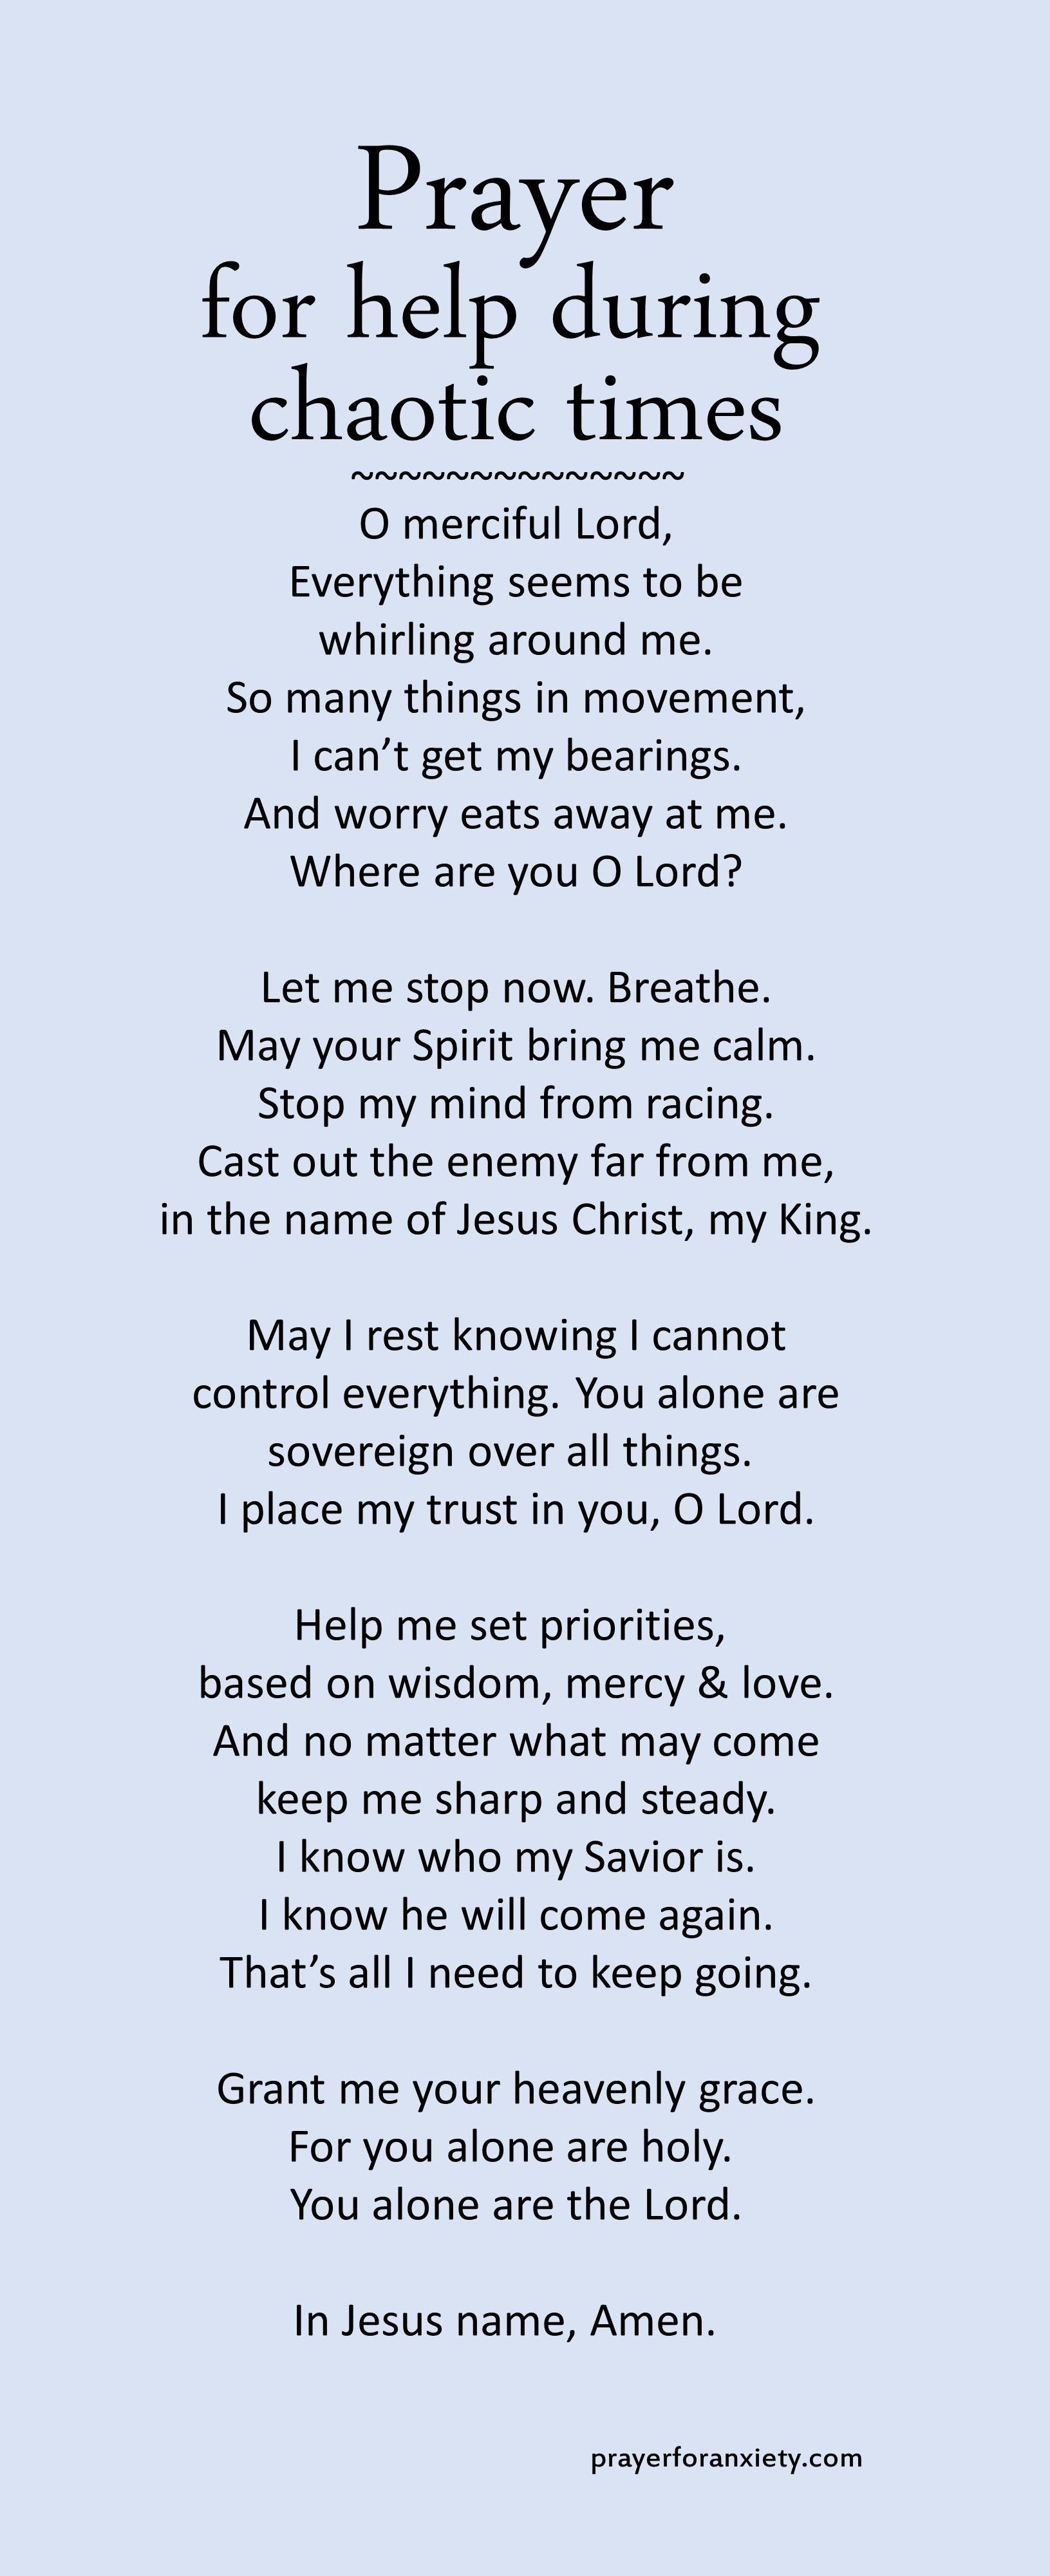 Prayer For Help During Chaotic Times Prayer For Help